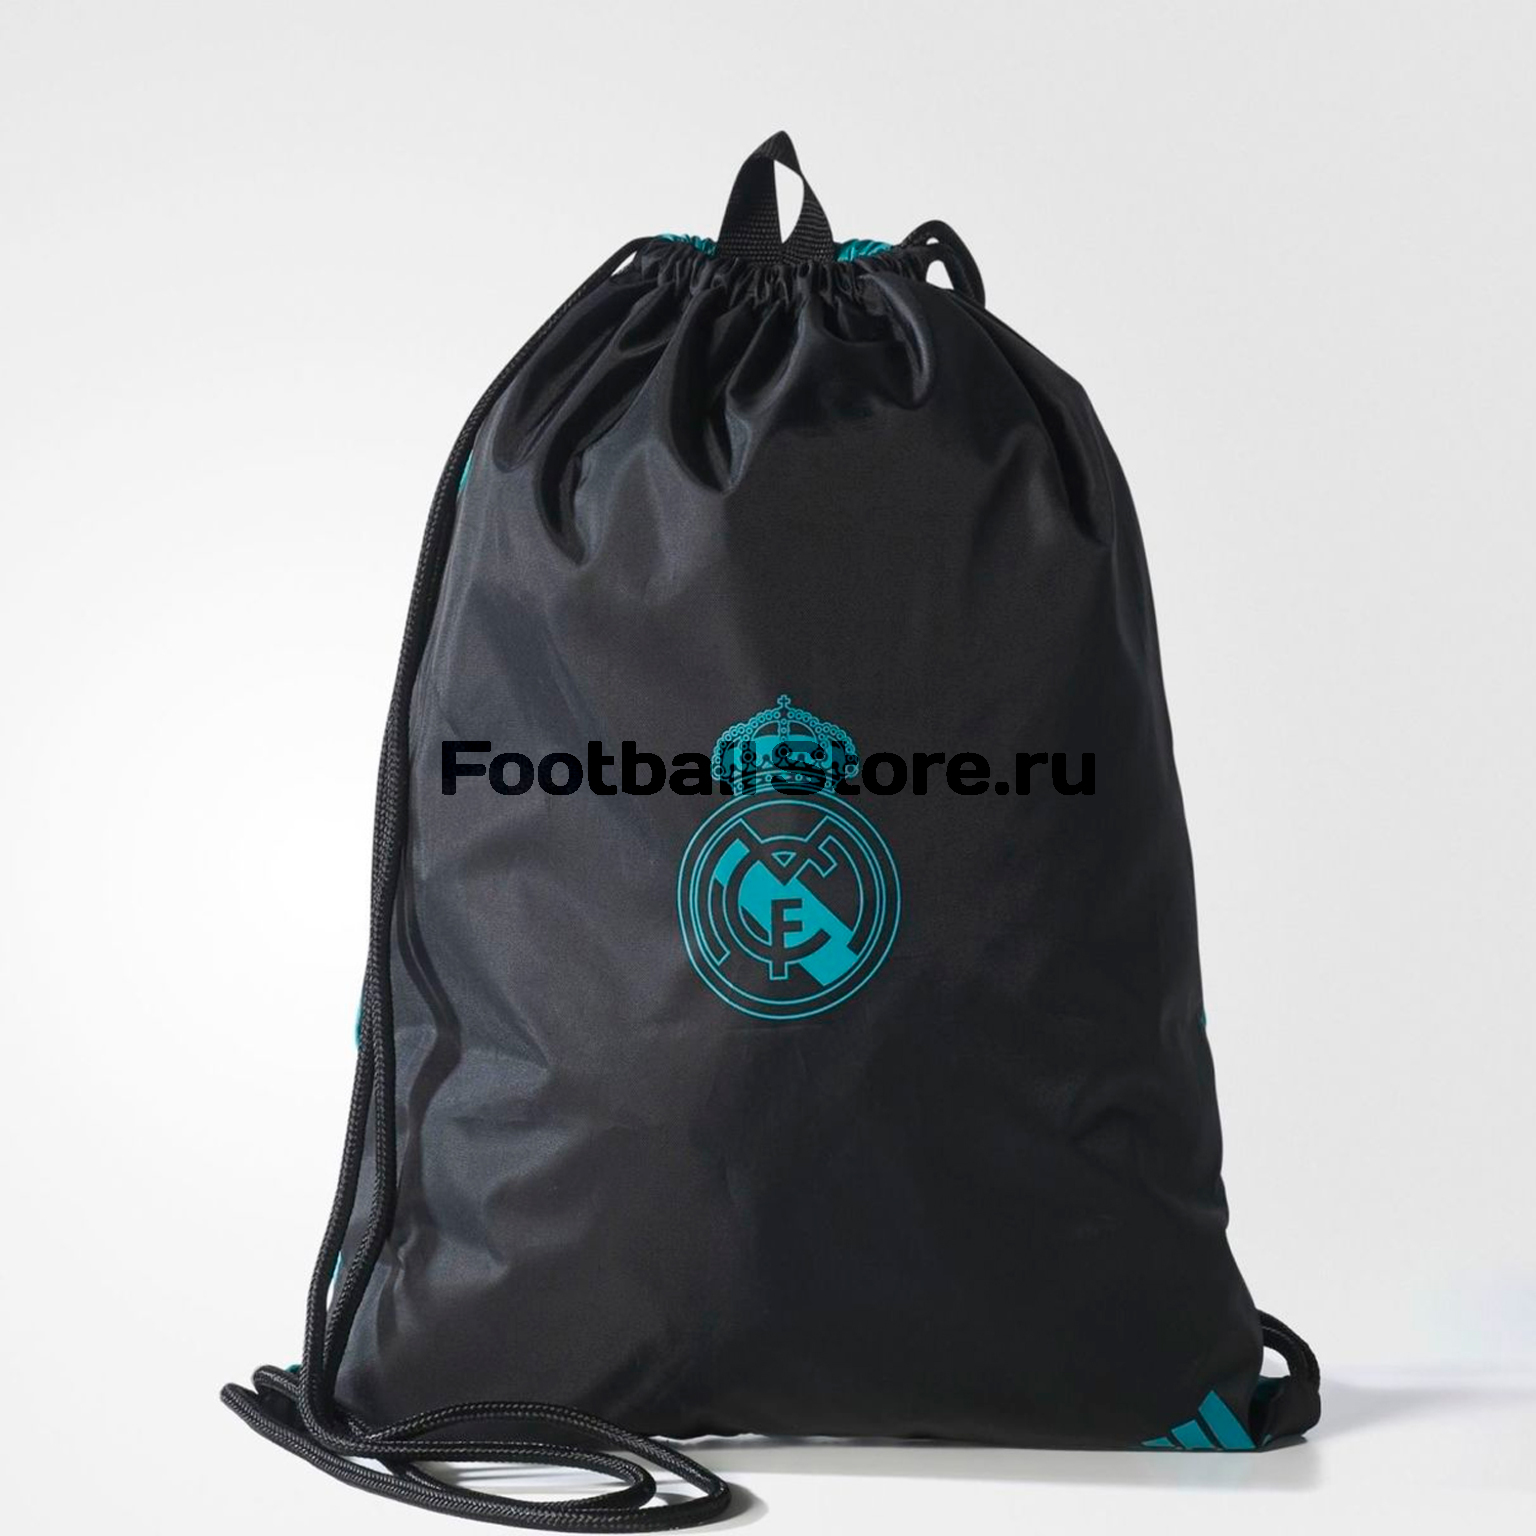 Сумки/Рюкзаки Adidas Сумка для обуви Adidas Real Madrid Gymbag BR7146 real madrid adidas свитер adidas real madrid euhybrid top bq7851